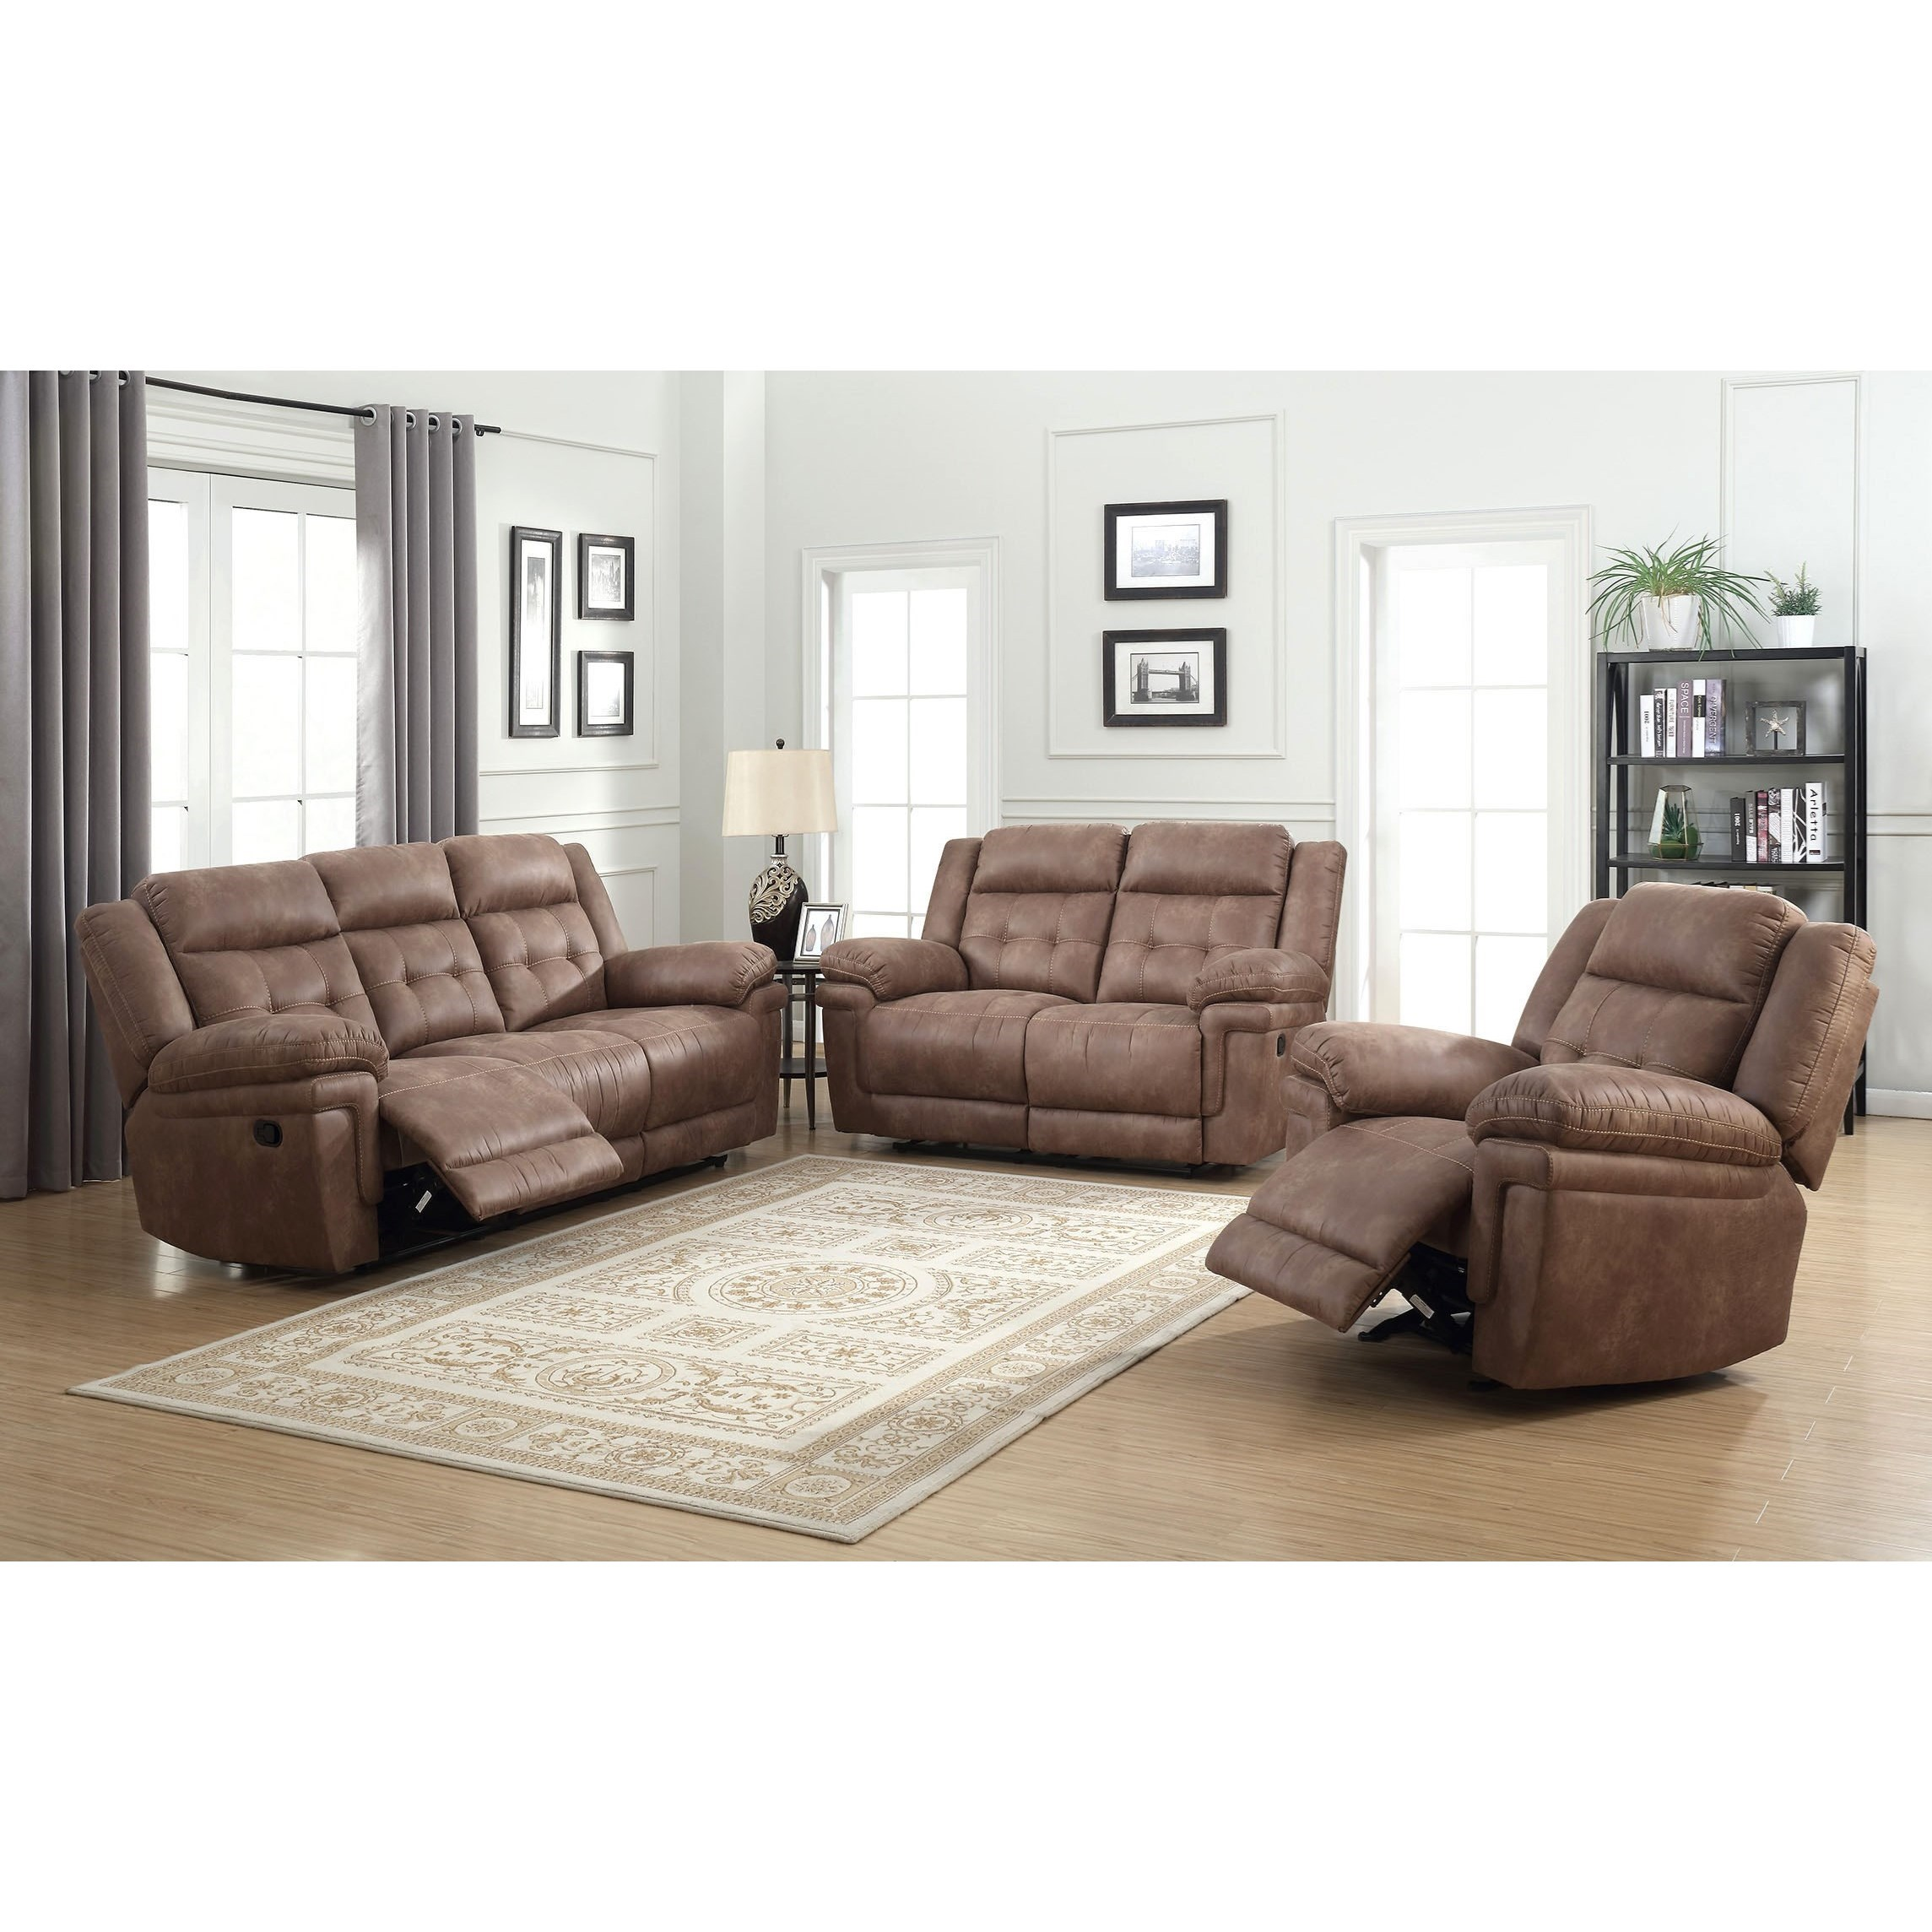 Steve Silver Anastasia At850lc Reclining Love Seat With